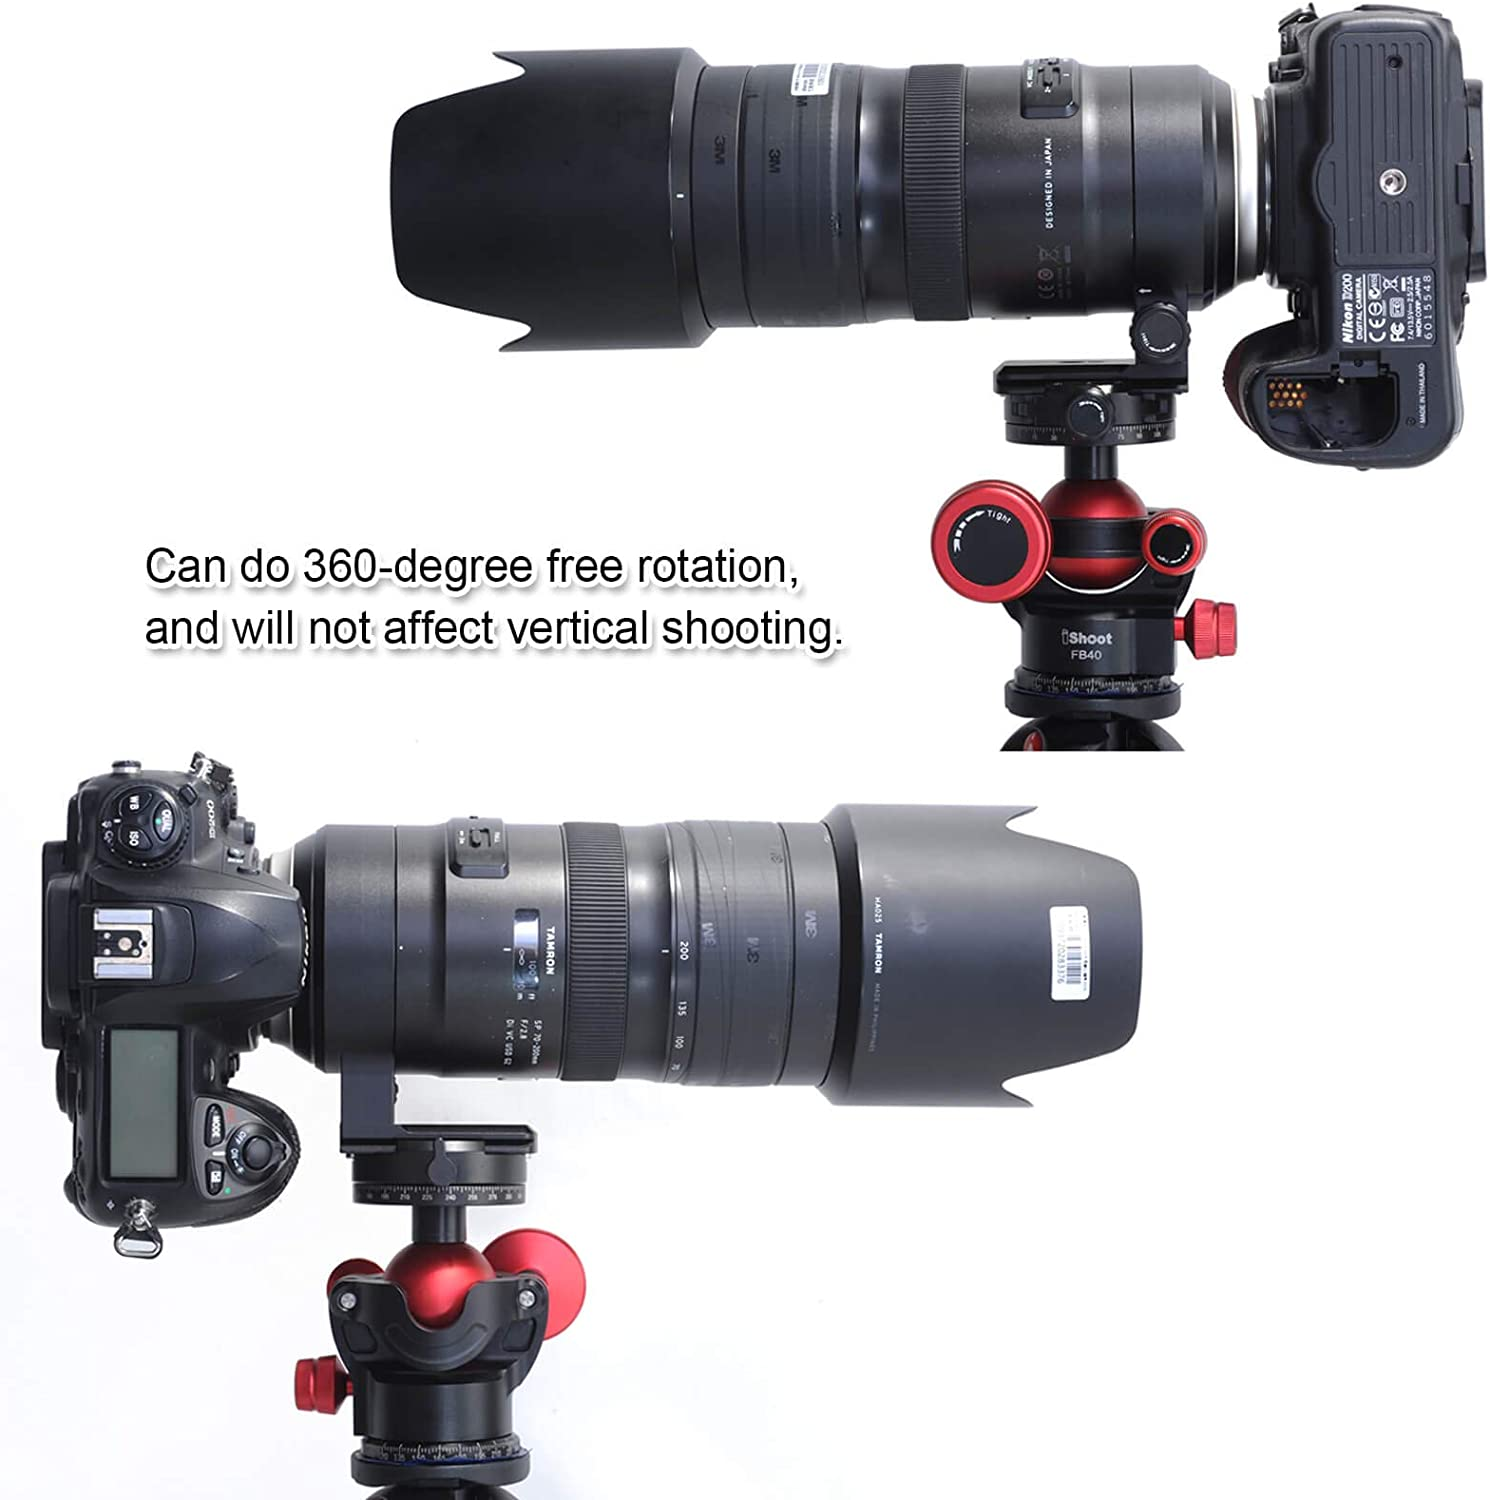 Tripod Mount Ring Compatible with Arca-Swiss Tripod Ball Head for Nikon F, Canon EF Metal Lens Collar with ARCA Quick Release Plate for Tamron SP 70-200mm f//2.8 Di VC USD G2 Telephoto Zoom Lens